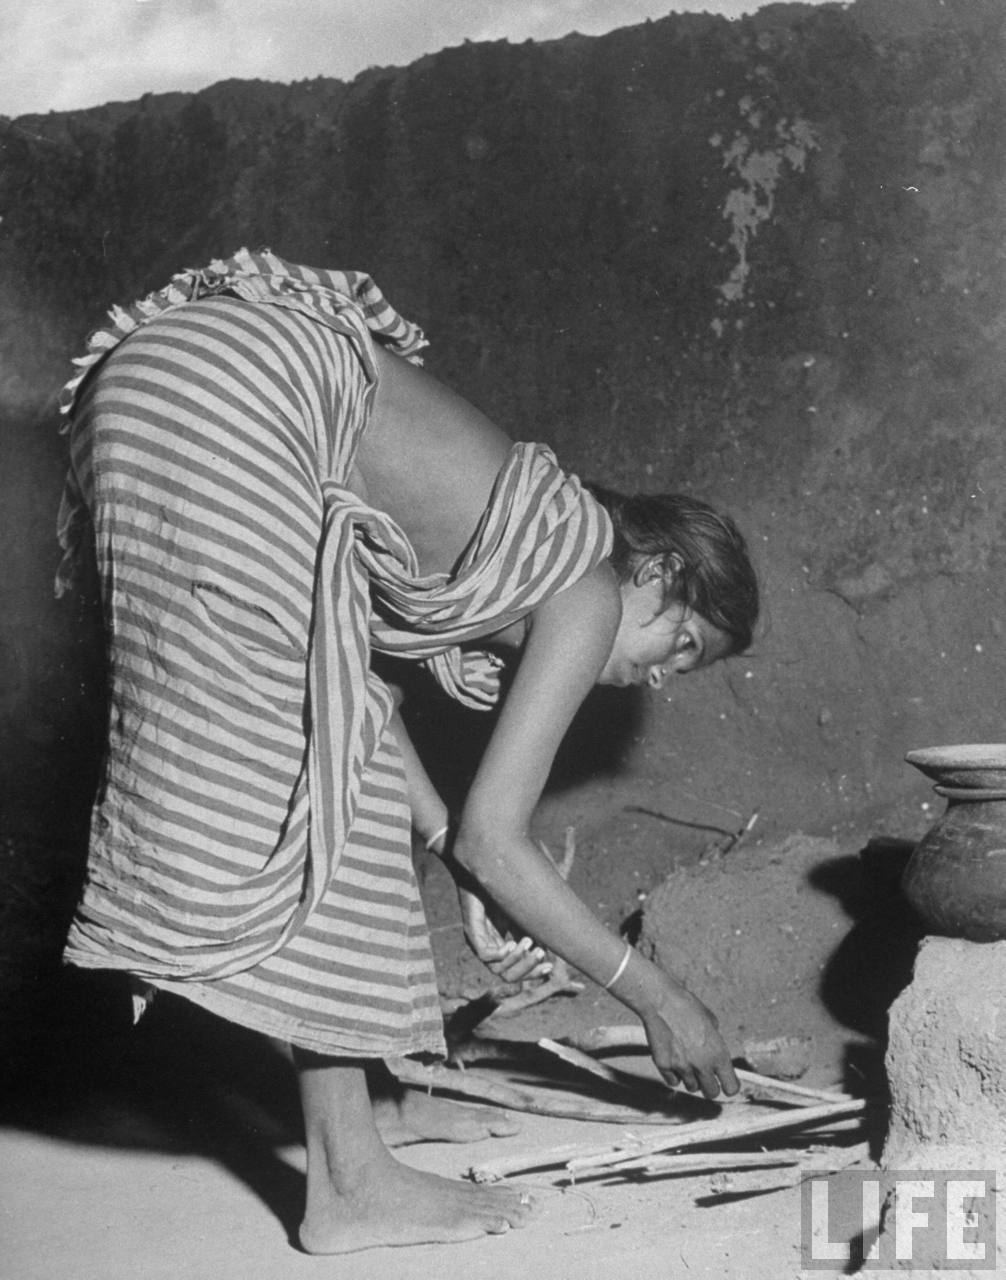 Young woman preparing wood to light fire for cooking in her open area living space - Poodalur India 1946